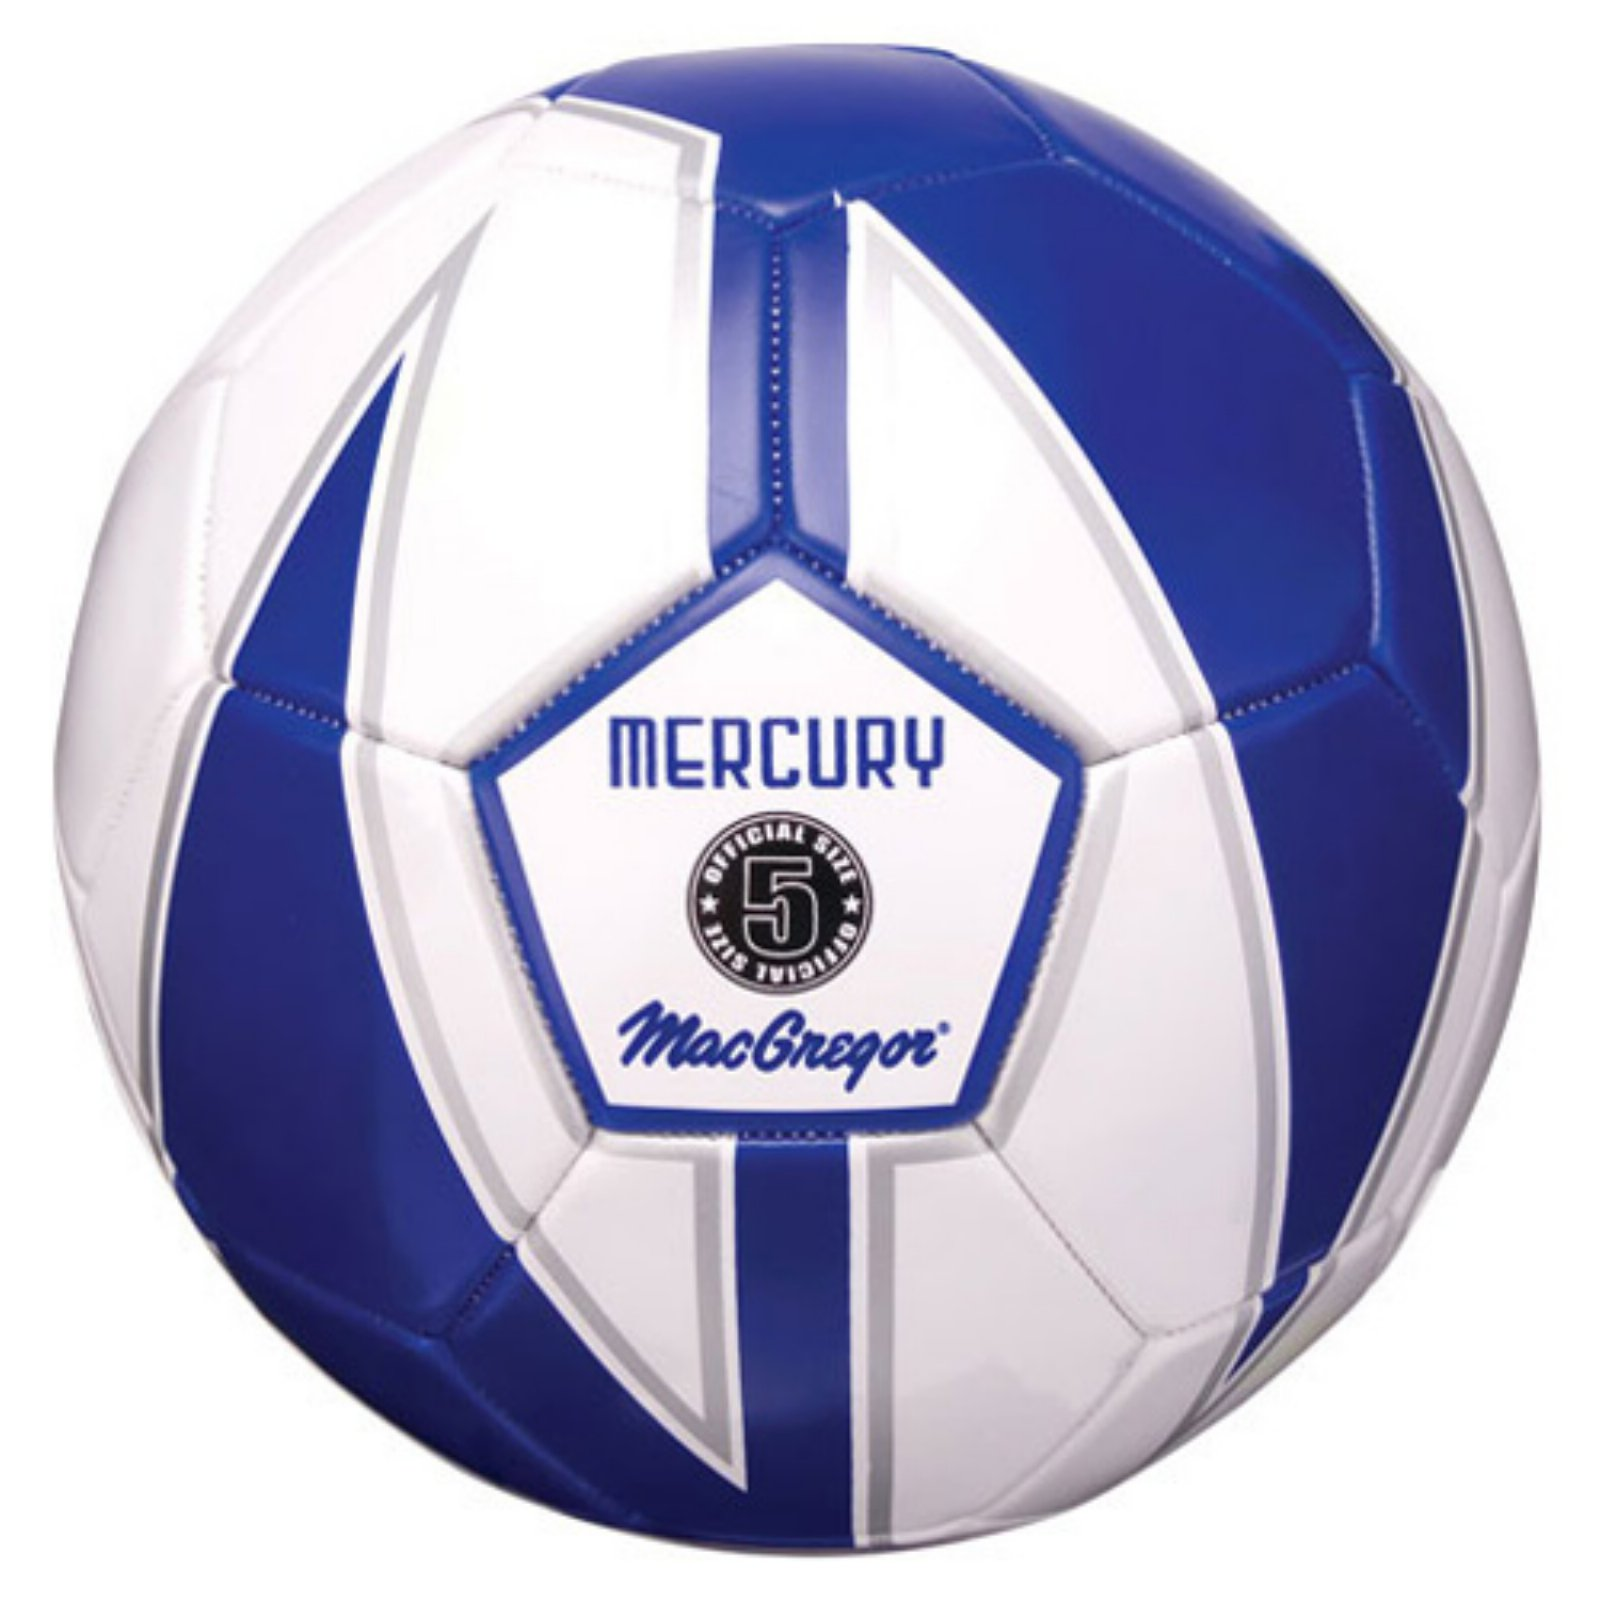 Macgregor Mercury Club Soccer Ball